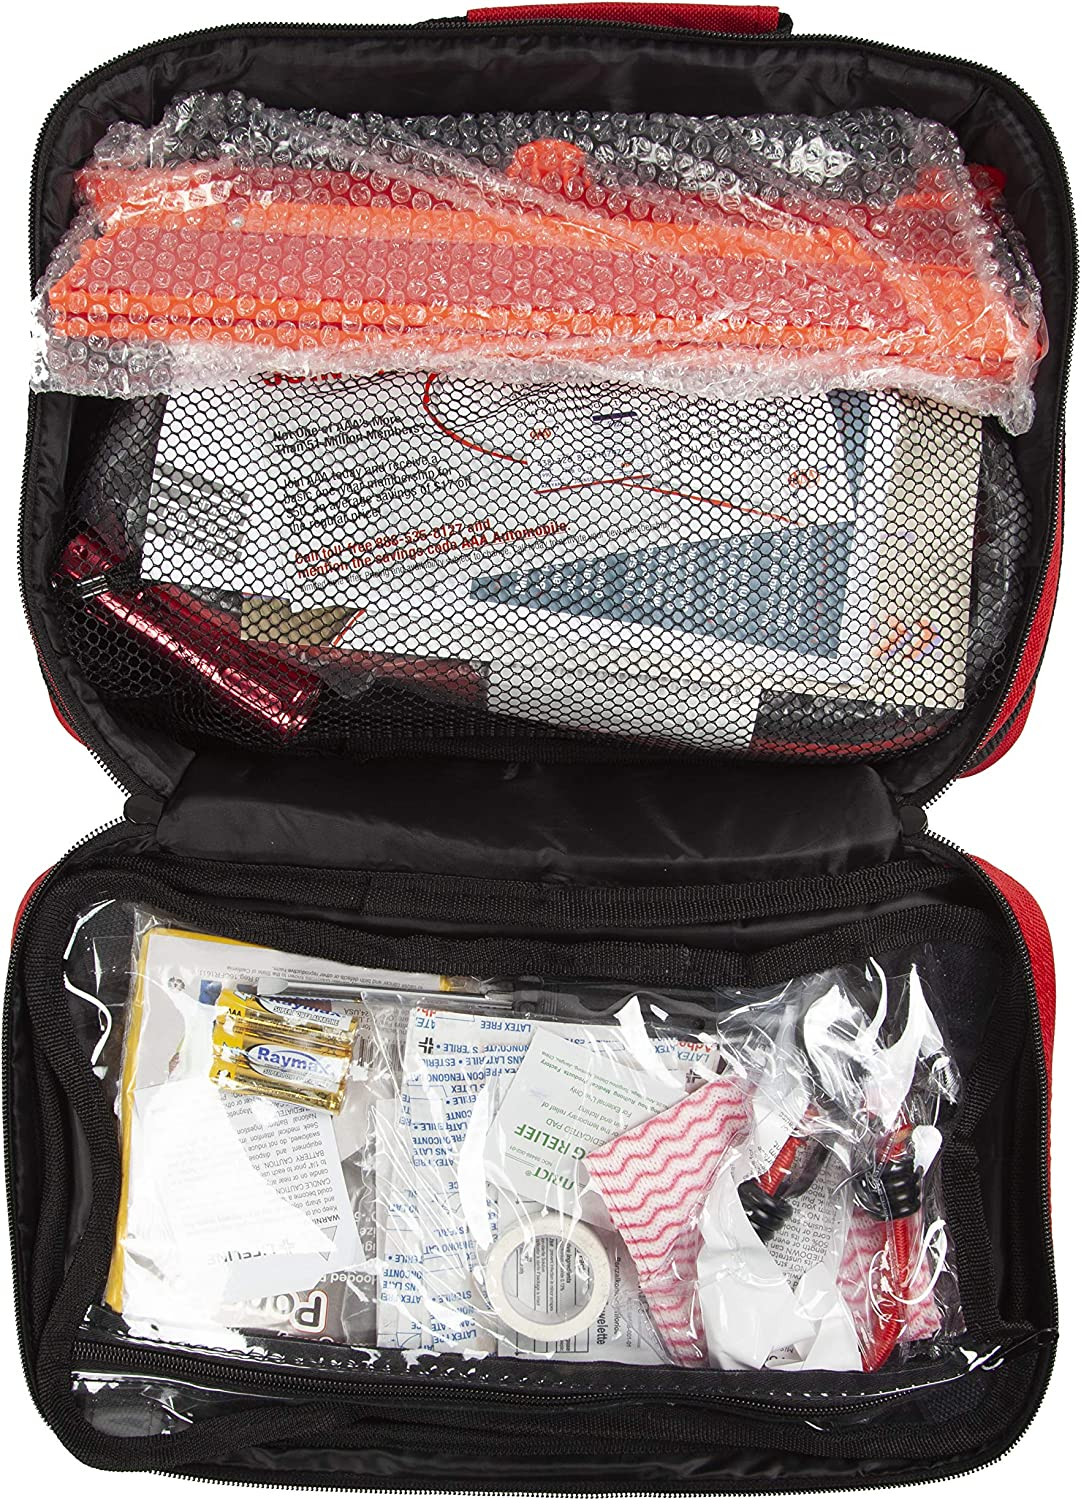 Emergency Traveler Kit AAA Approved Roadside Kit 103 Pieces